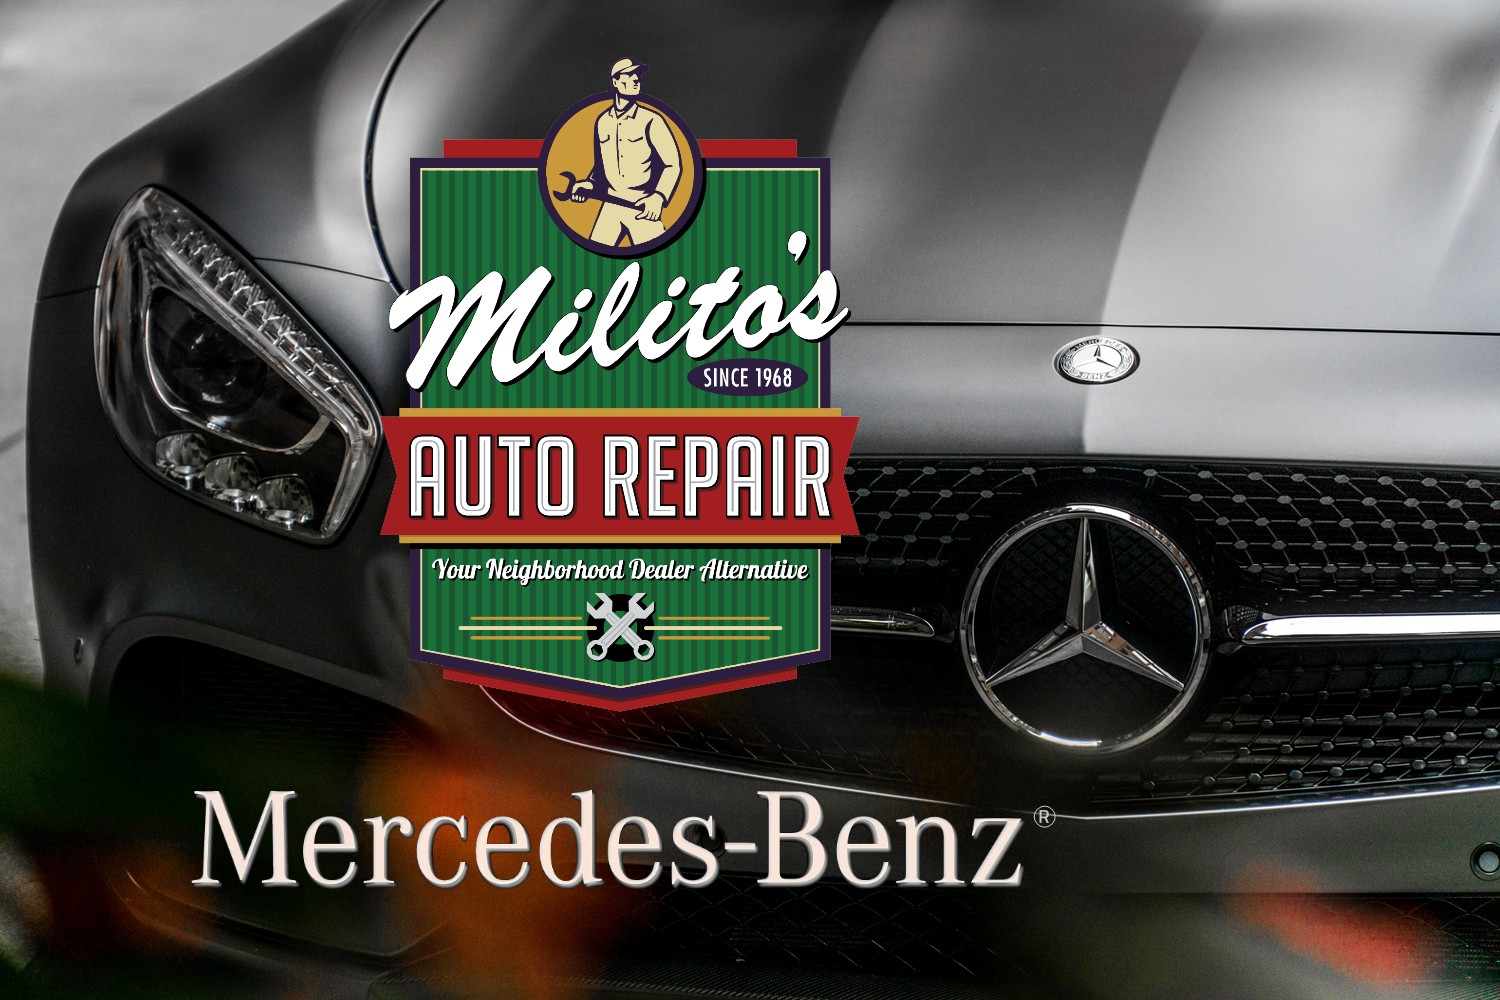 Mercedes Benz Repair Shop in Chicago, Your Local Dealer Alternative - Militos Auto Repair 60614